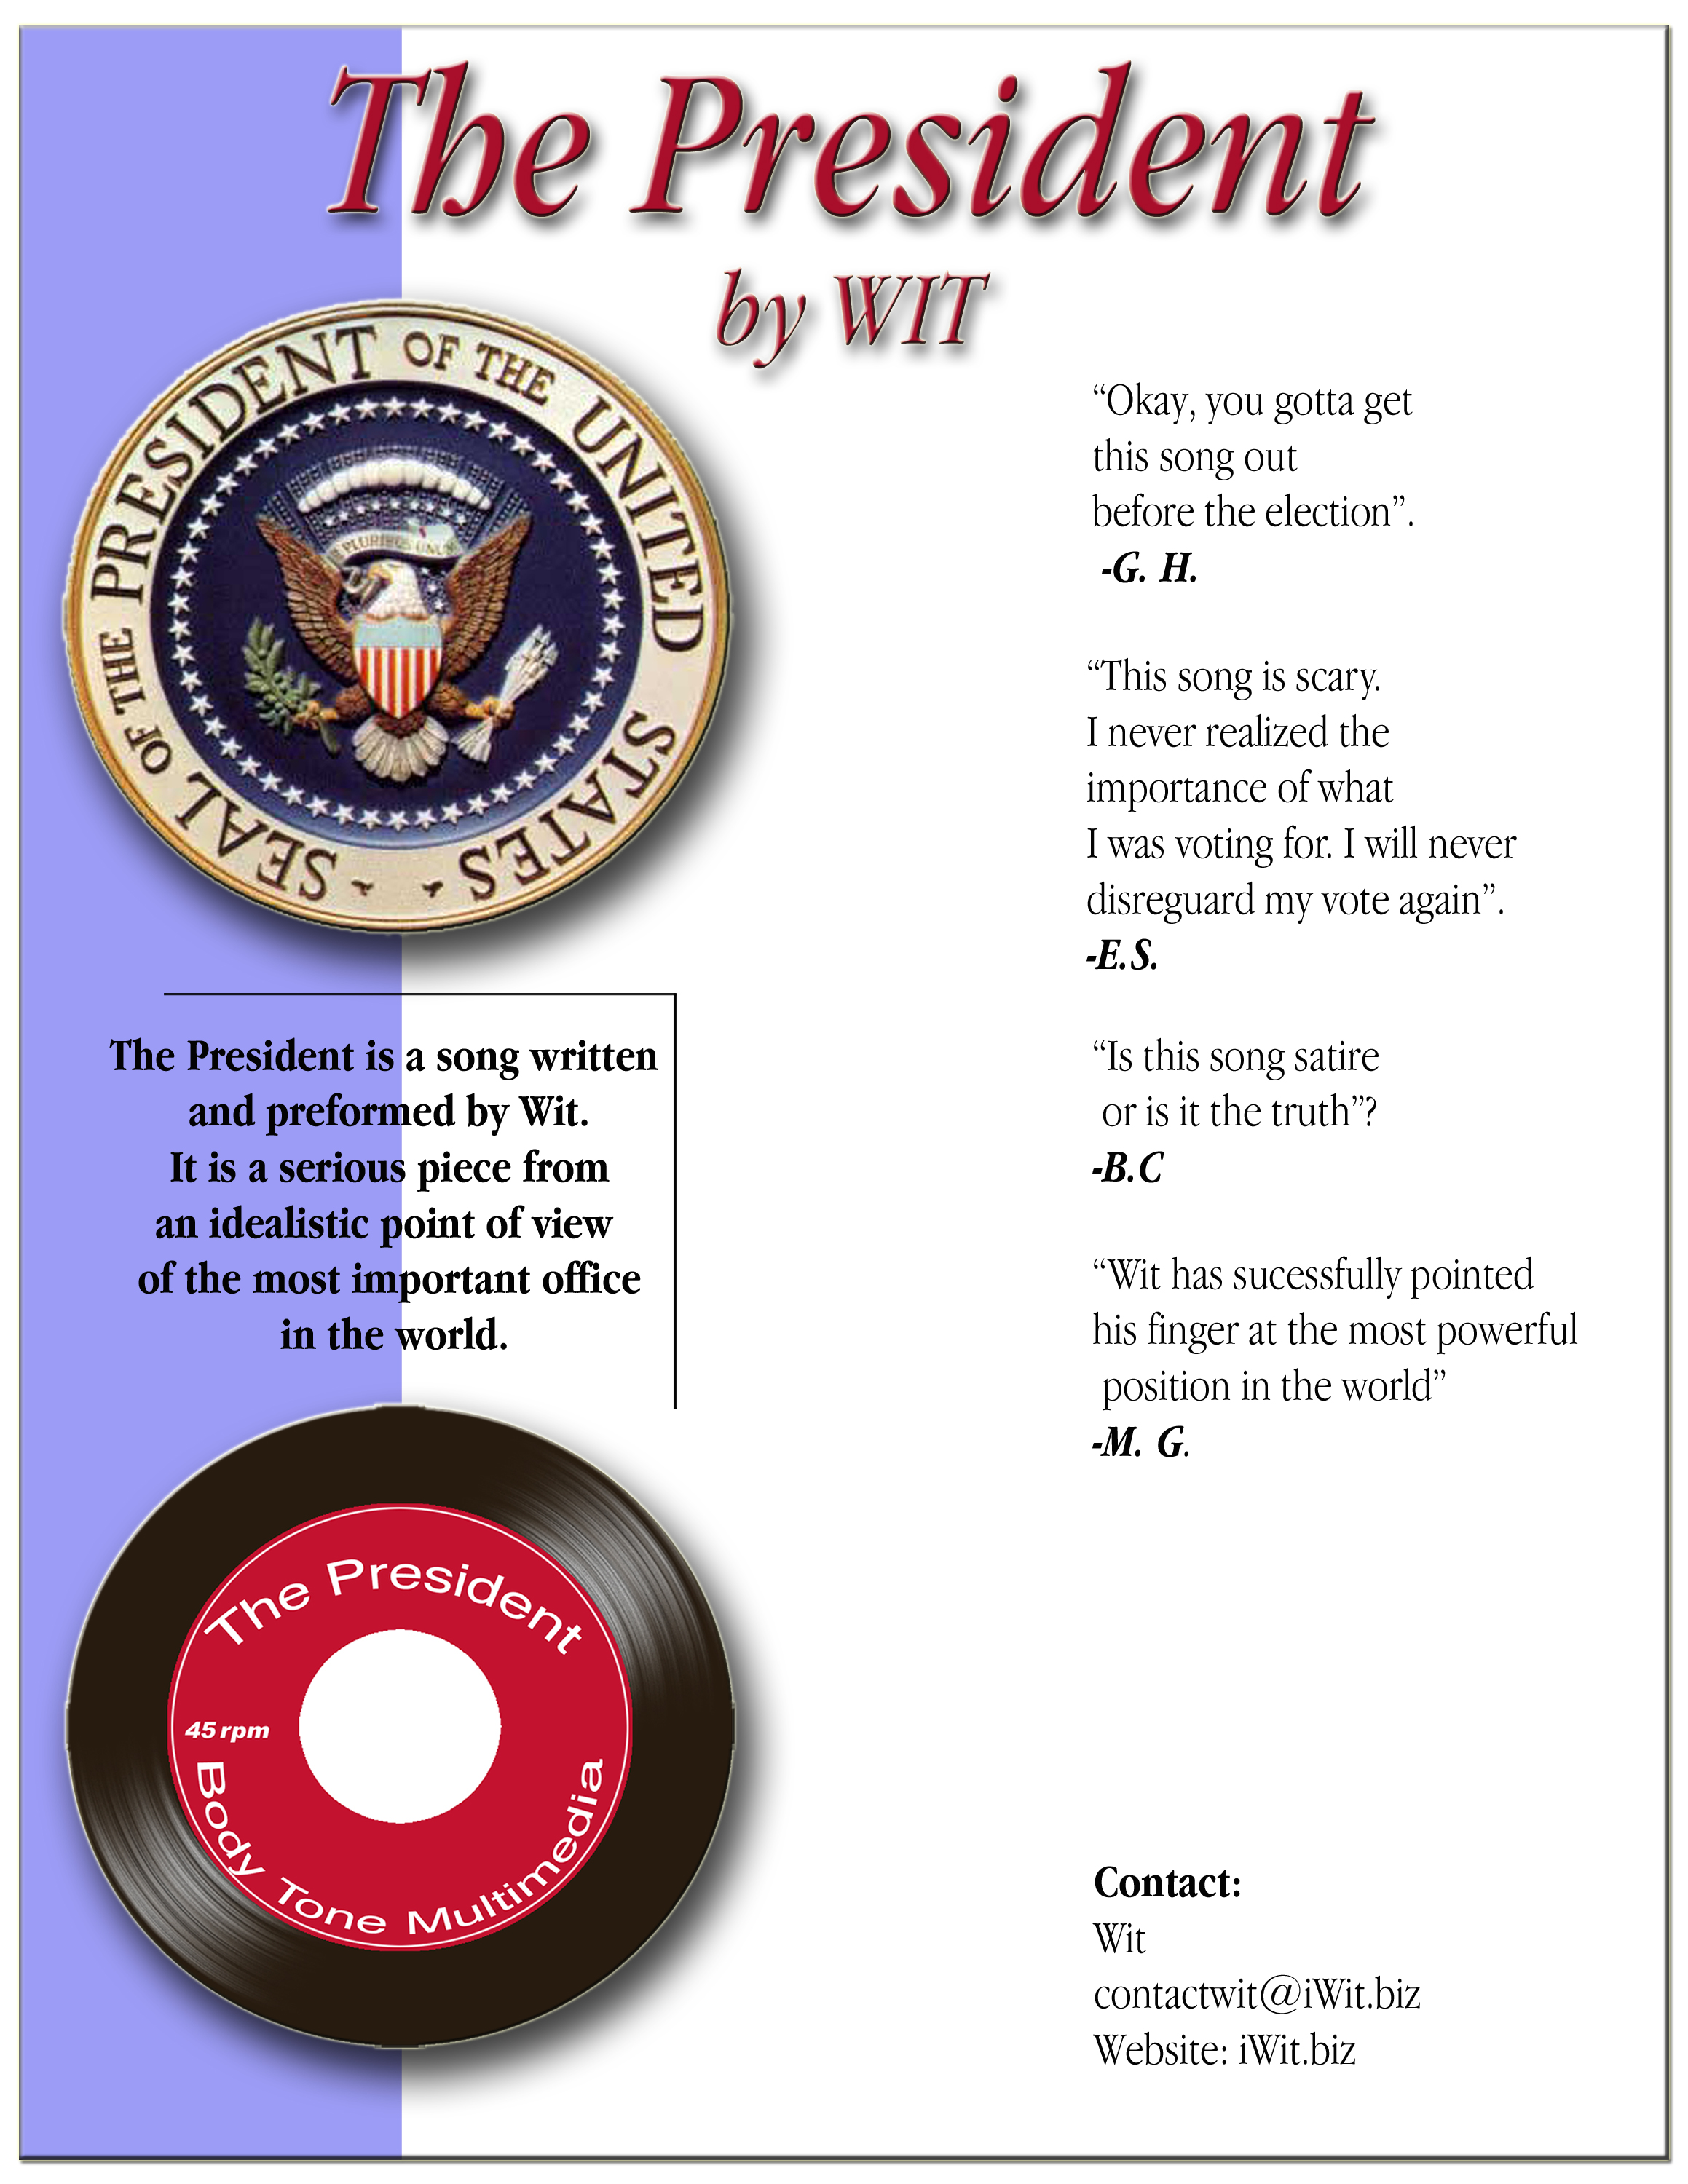 The President one sheet